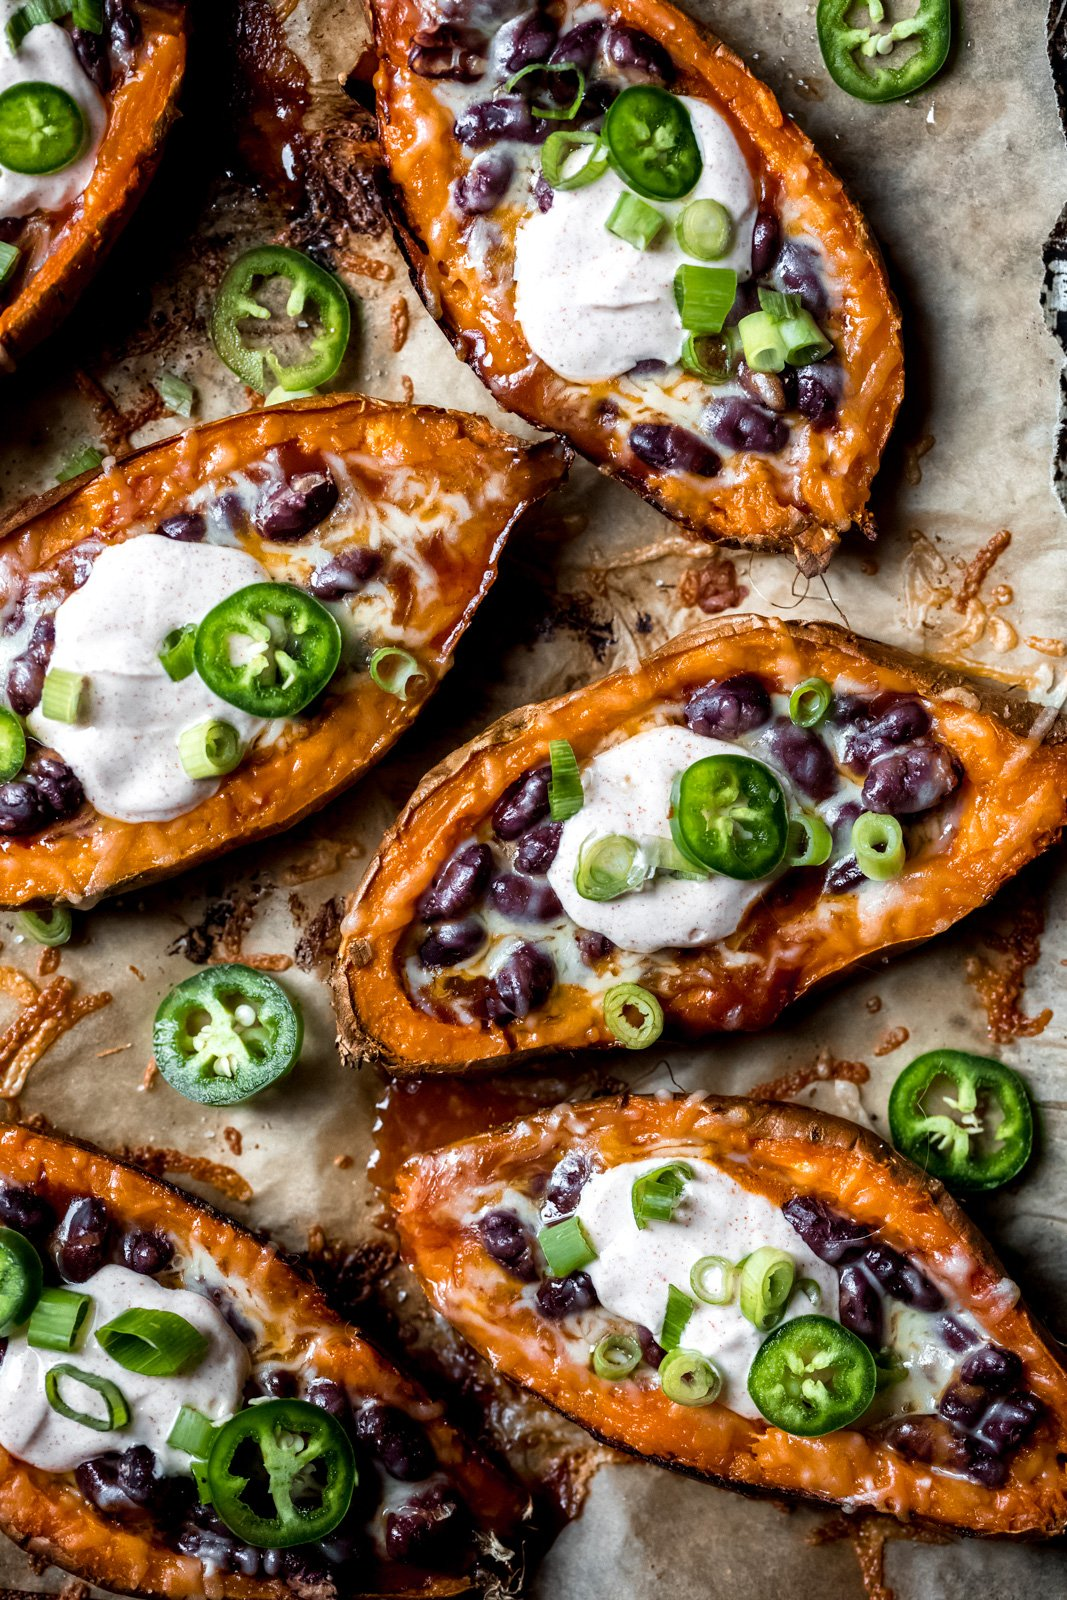 stuffed sweet potato skins topped with jalapeño slices on a baking sheet